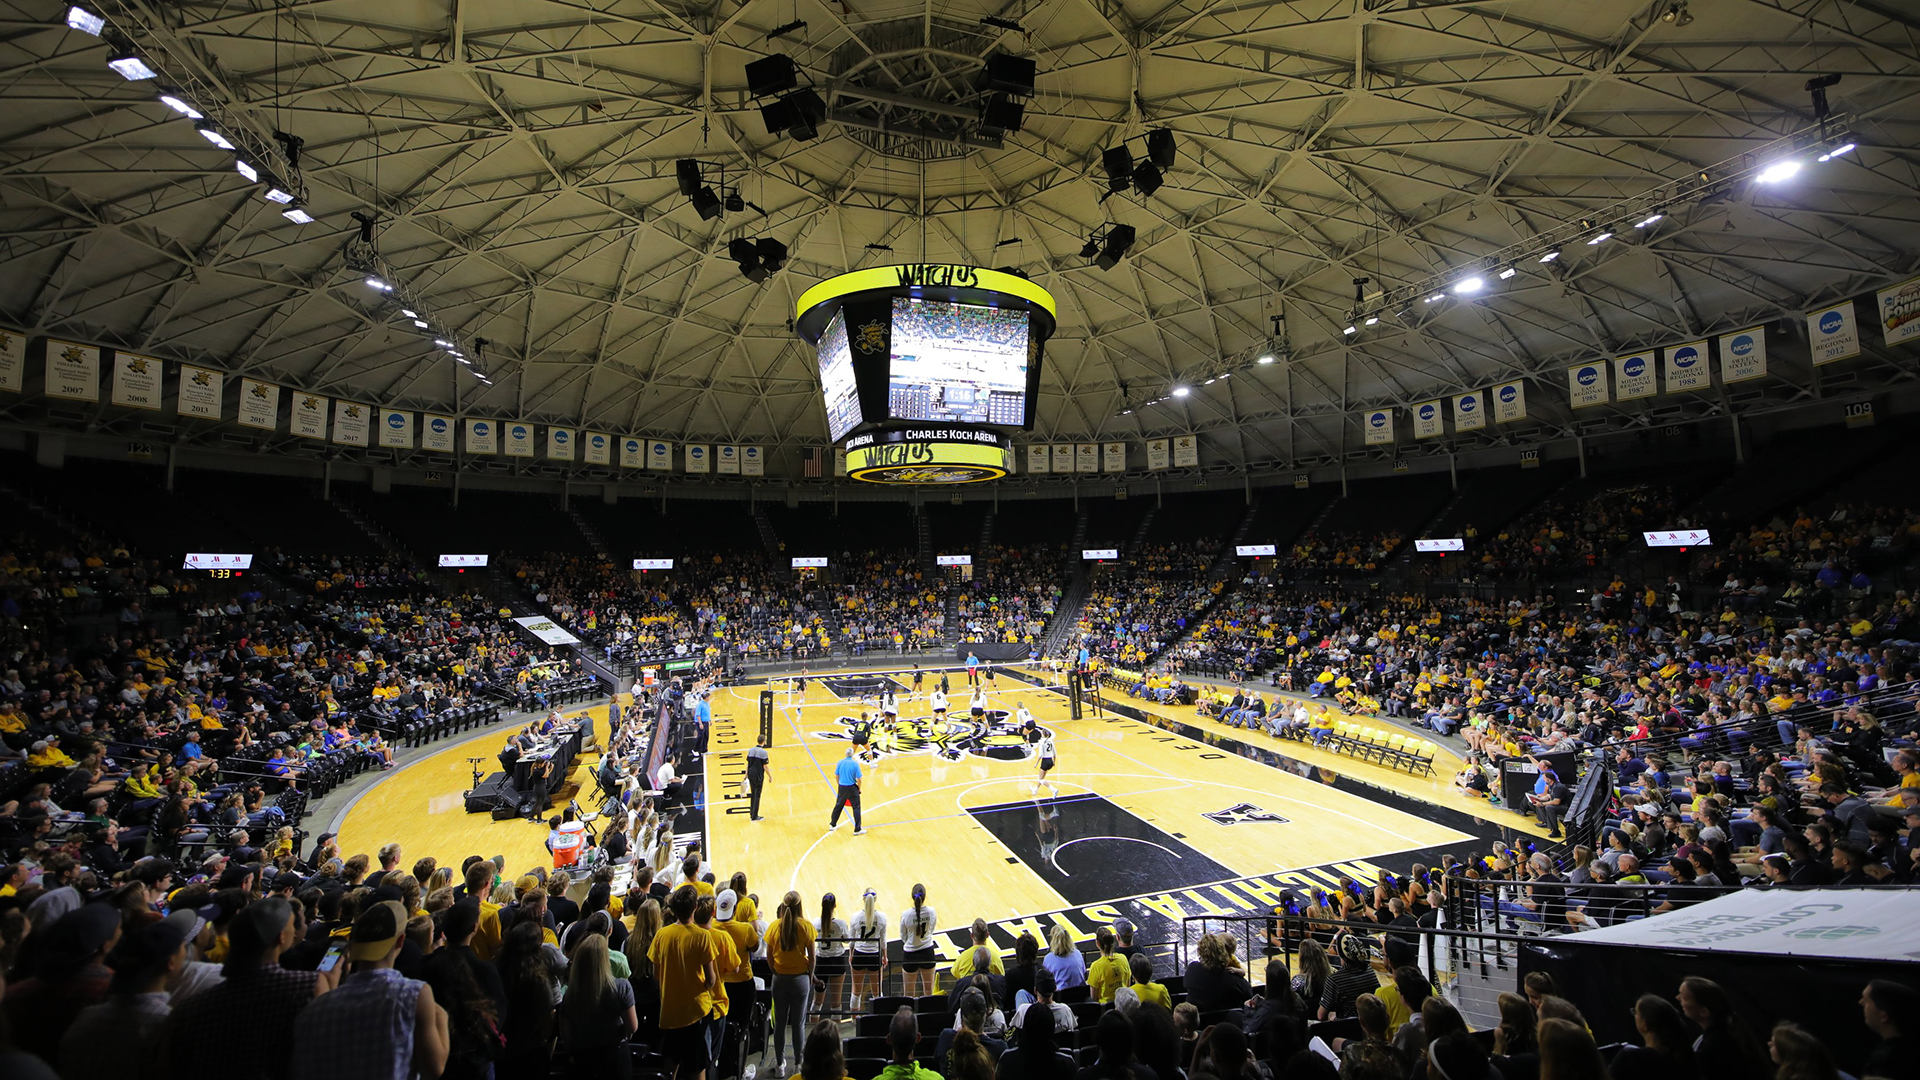 Shockers Unveil 2019 Volleyball Schedule - Wichita State Athletics on koch arena seating guide, koch arena seating chart, koch arena map, koch arena events,